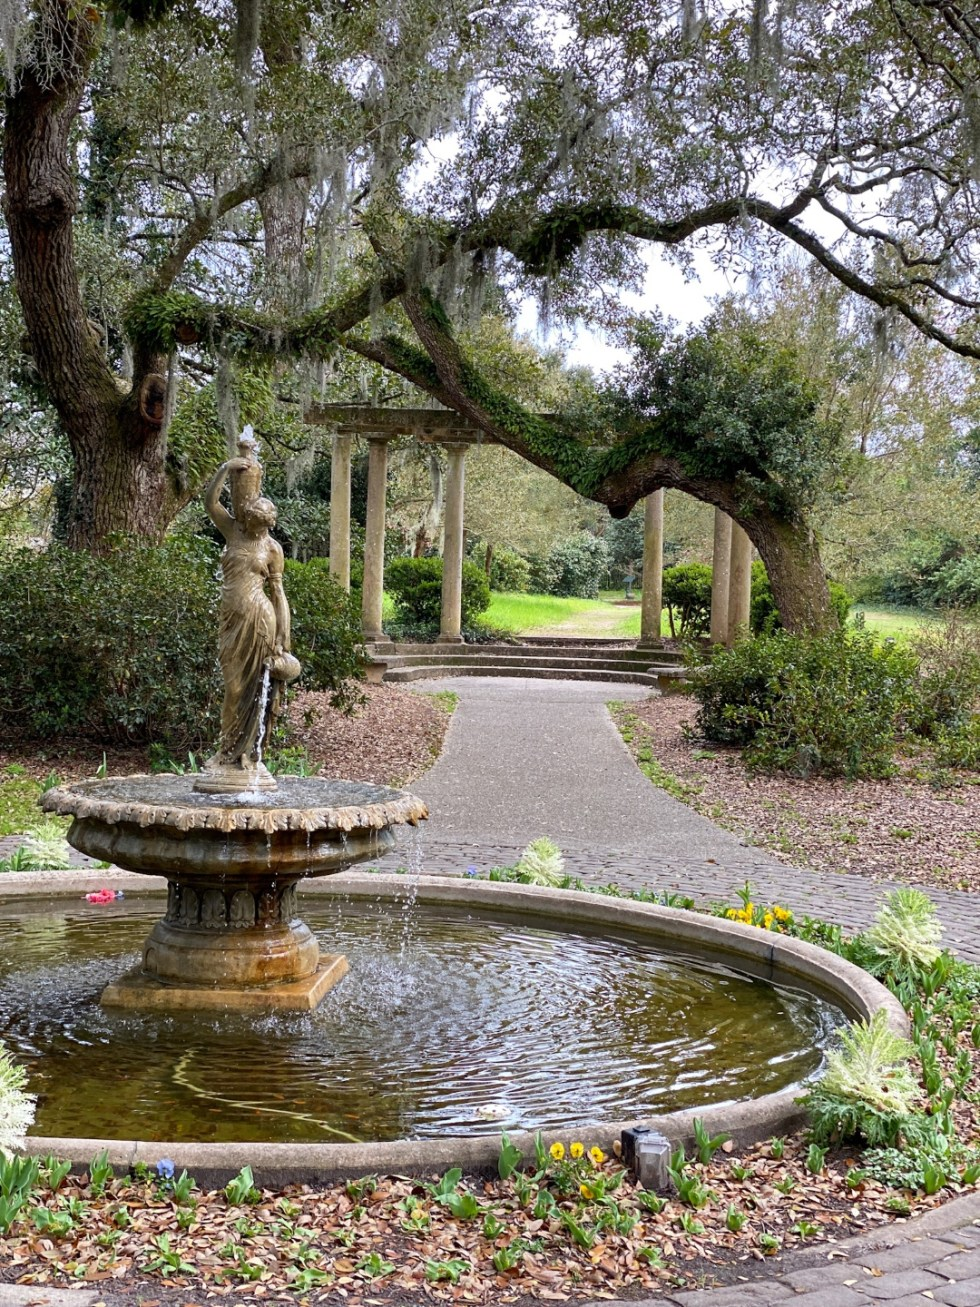 A Spring Weekend in Wilmington, NC: the Best Things to Do - I'm Fixin' To - @imfixintoblog |Weekend in Wilmington by popular NC travel blog, I'm Fixin' To: image of oak trees and a water fountain feature in Airlie Gardens.